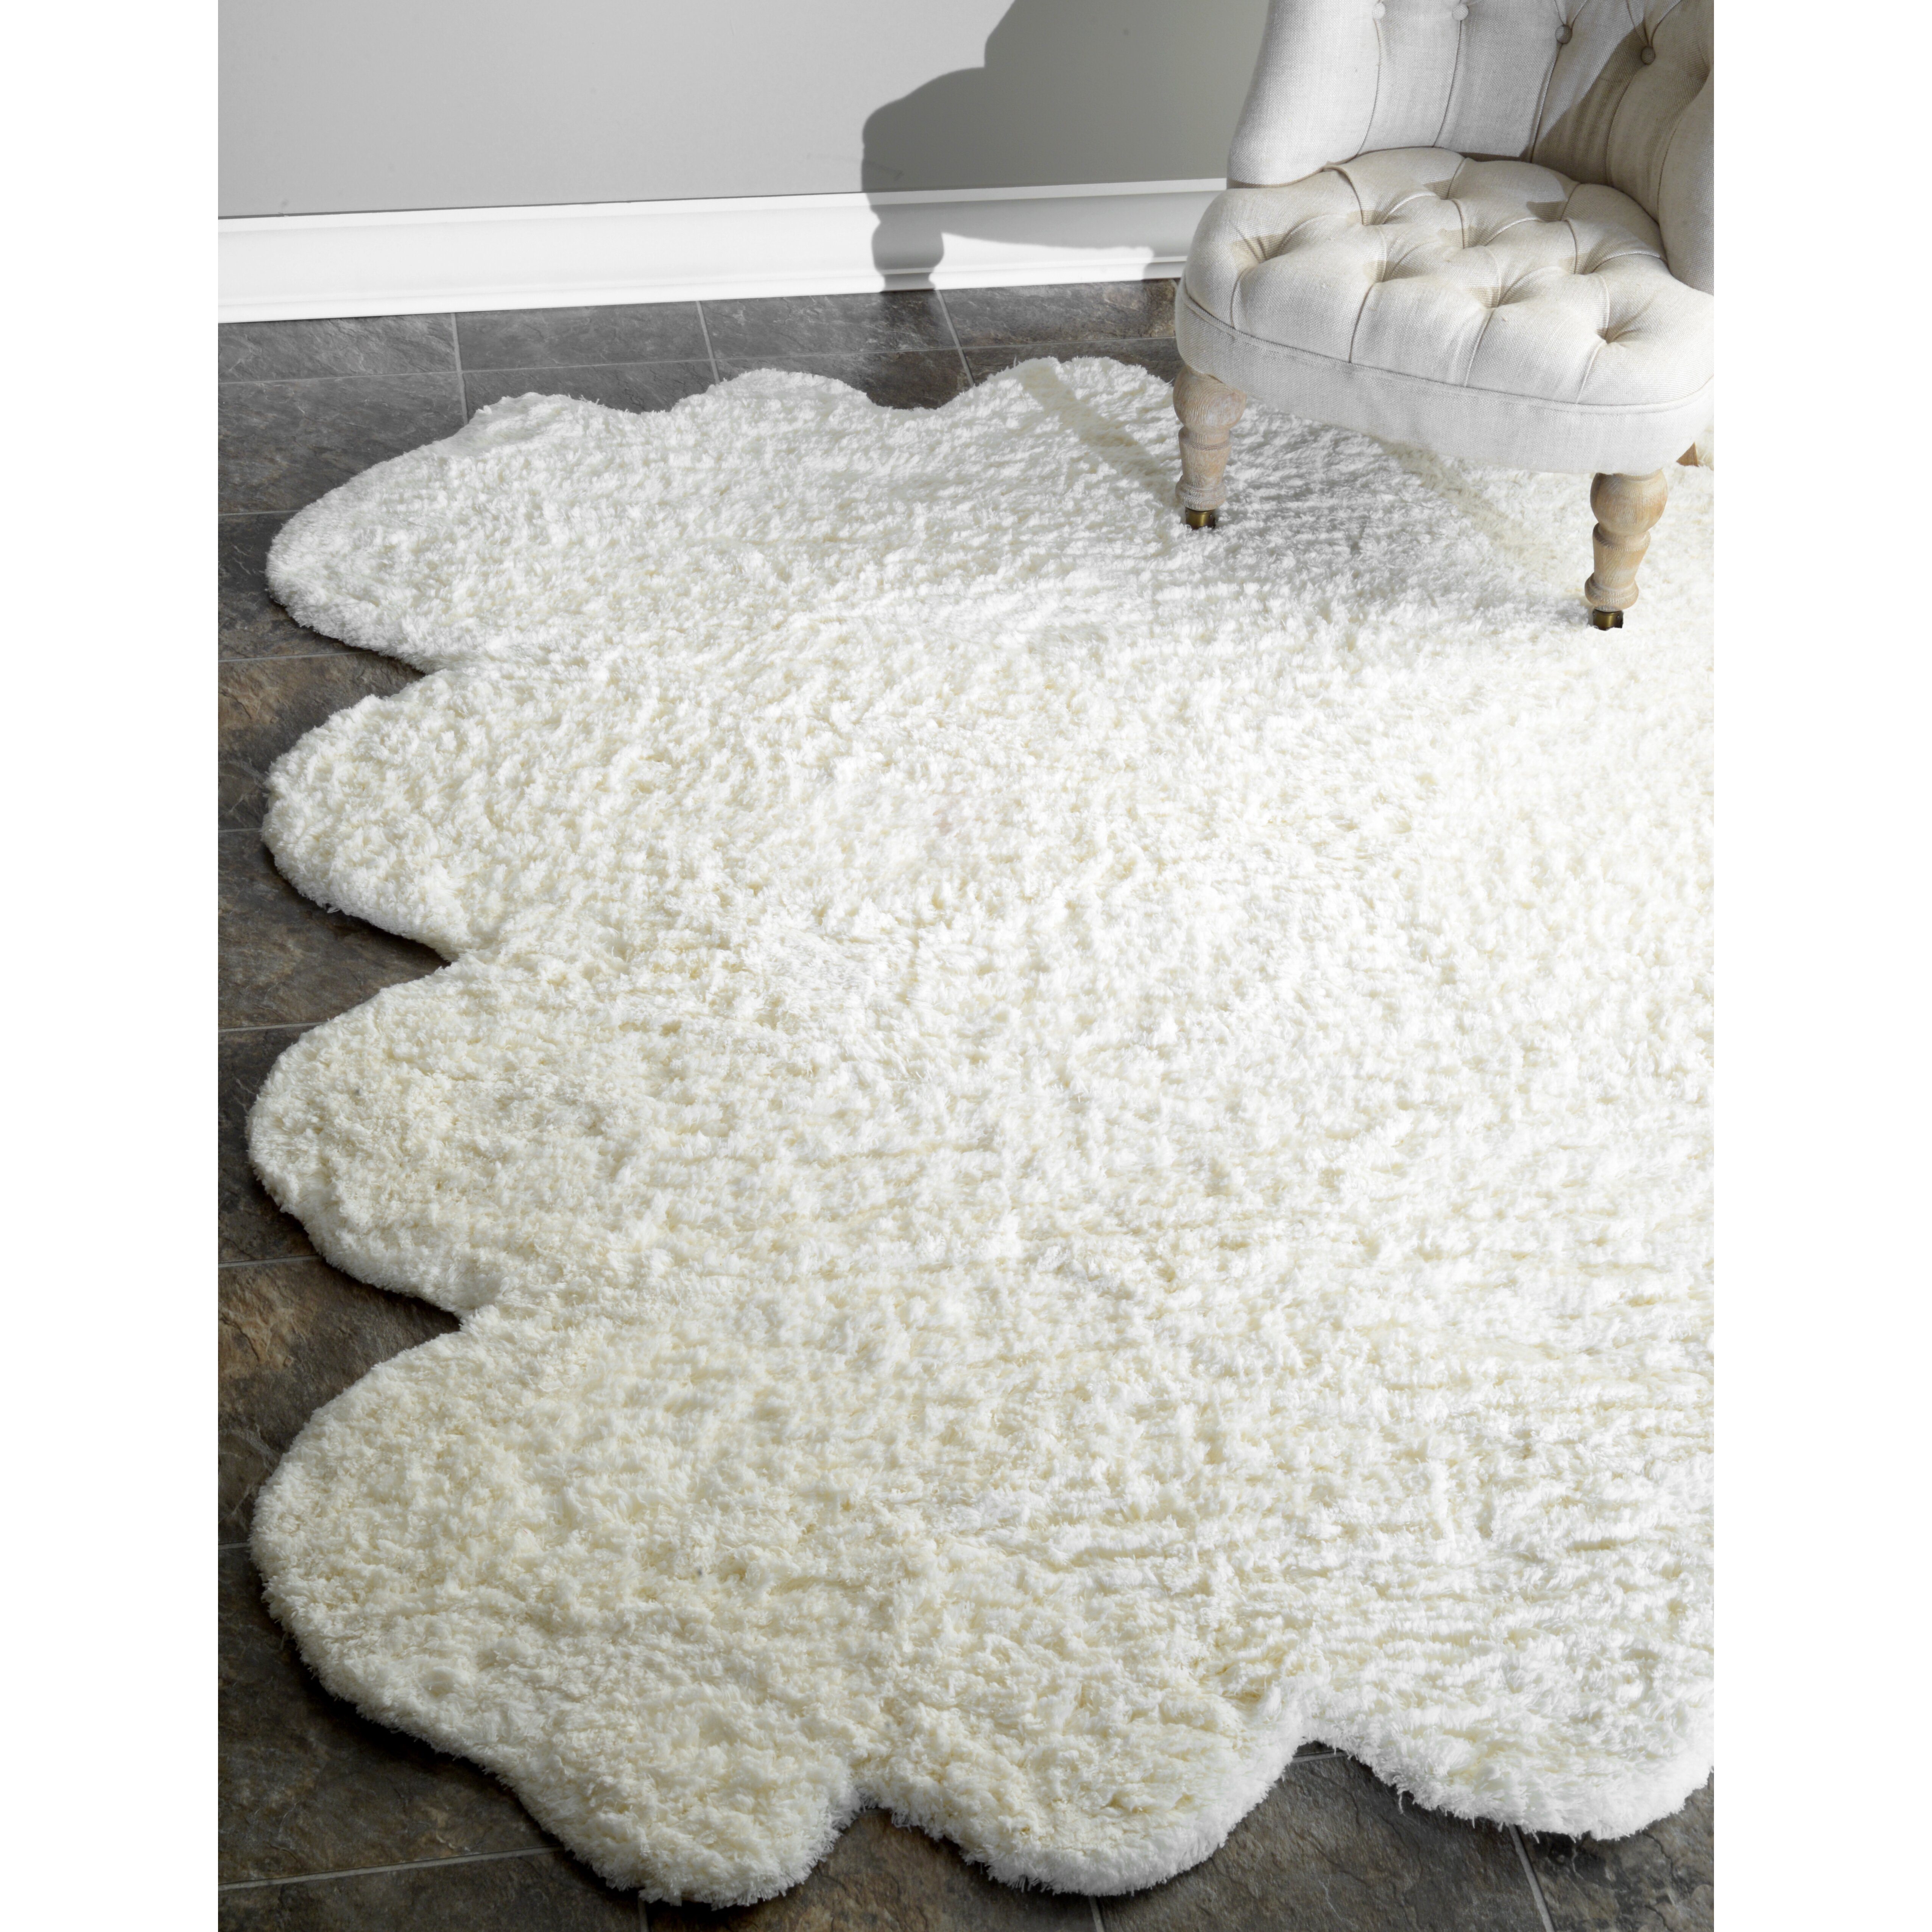 Octo Pelt Faux Sheepskin Hand Tufted Natural Area Rug